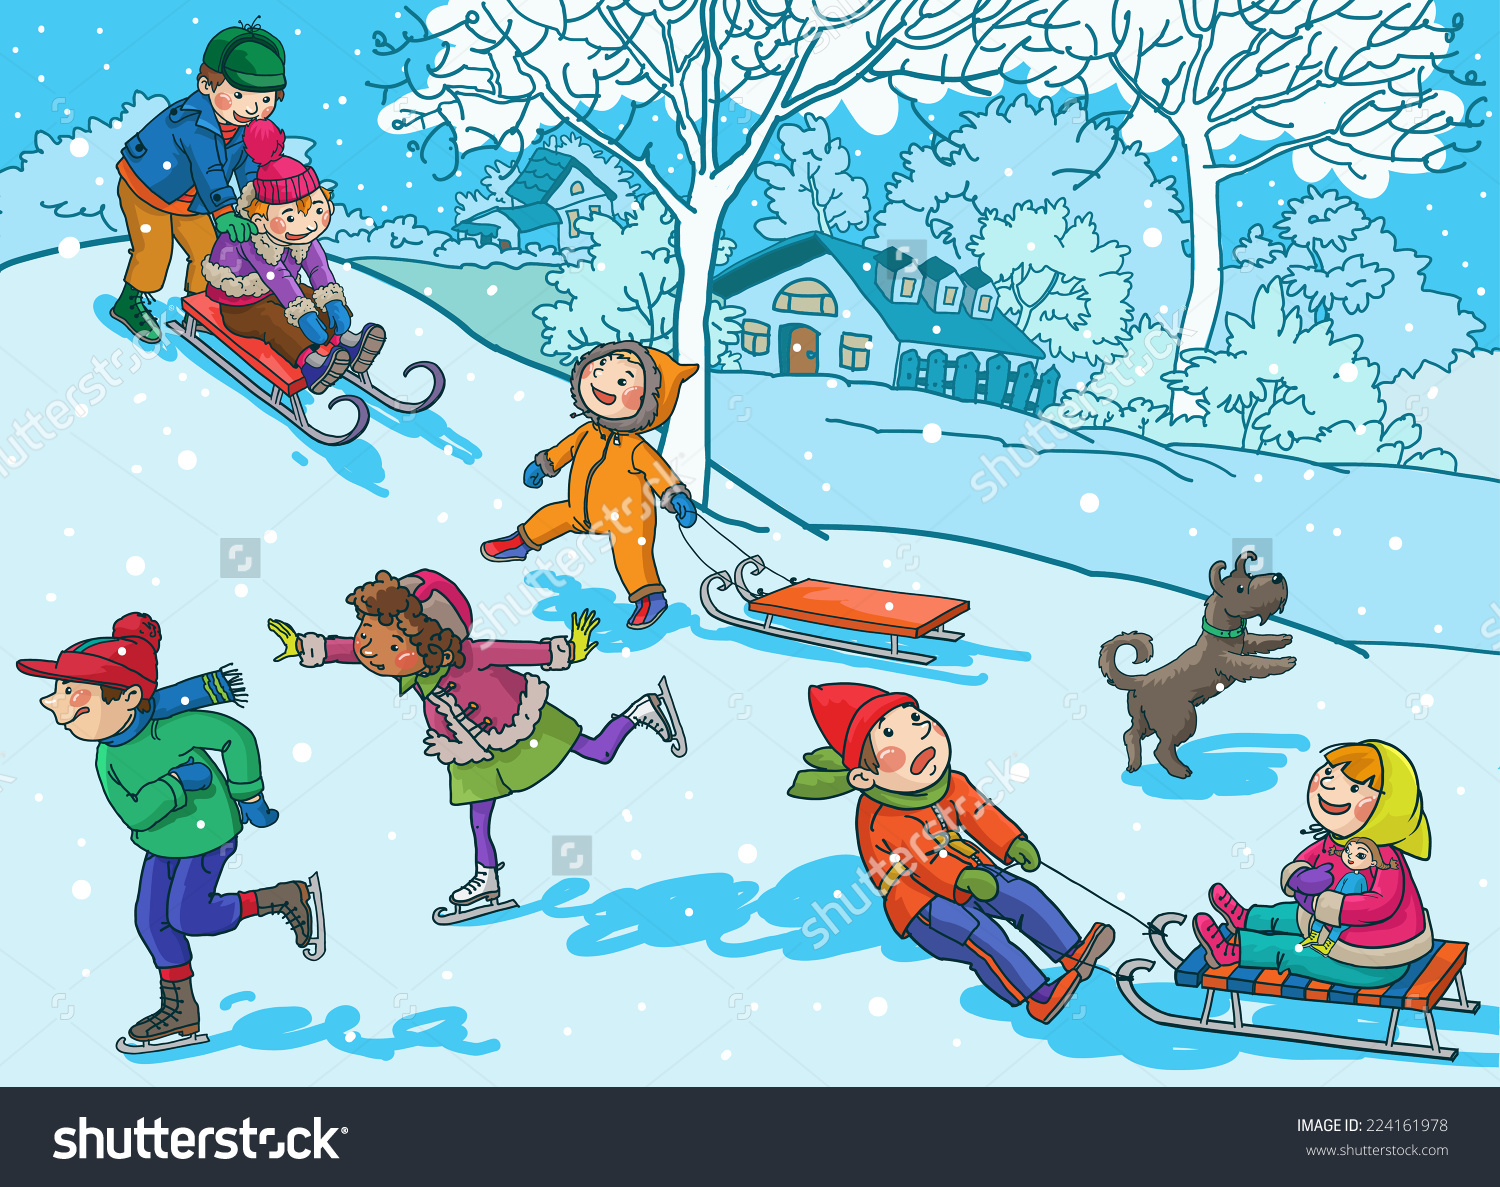 Activities clipart vector. Season winter activity pencil